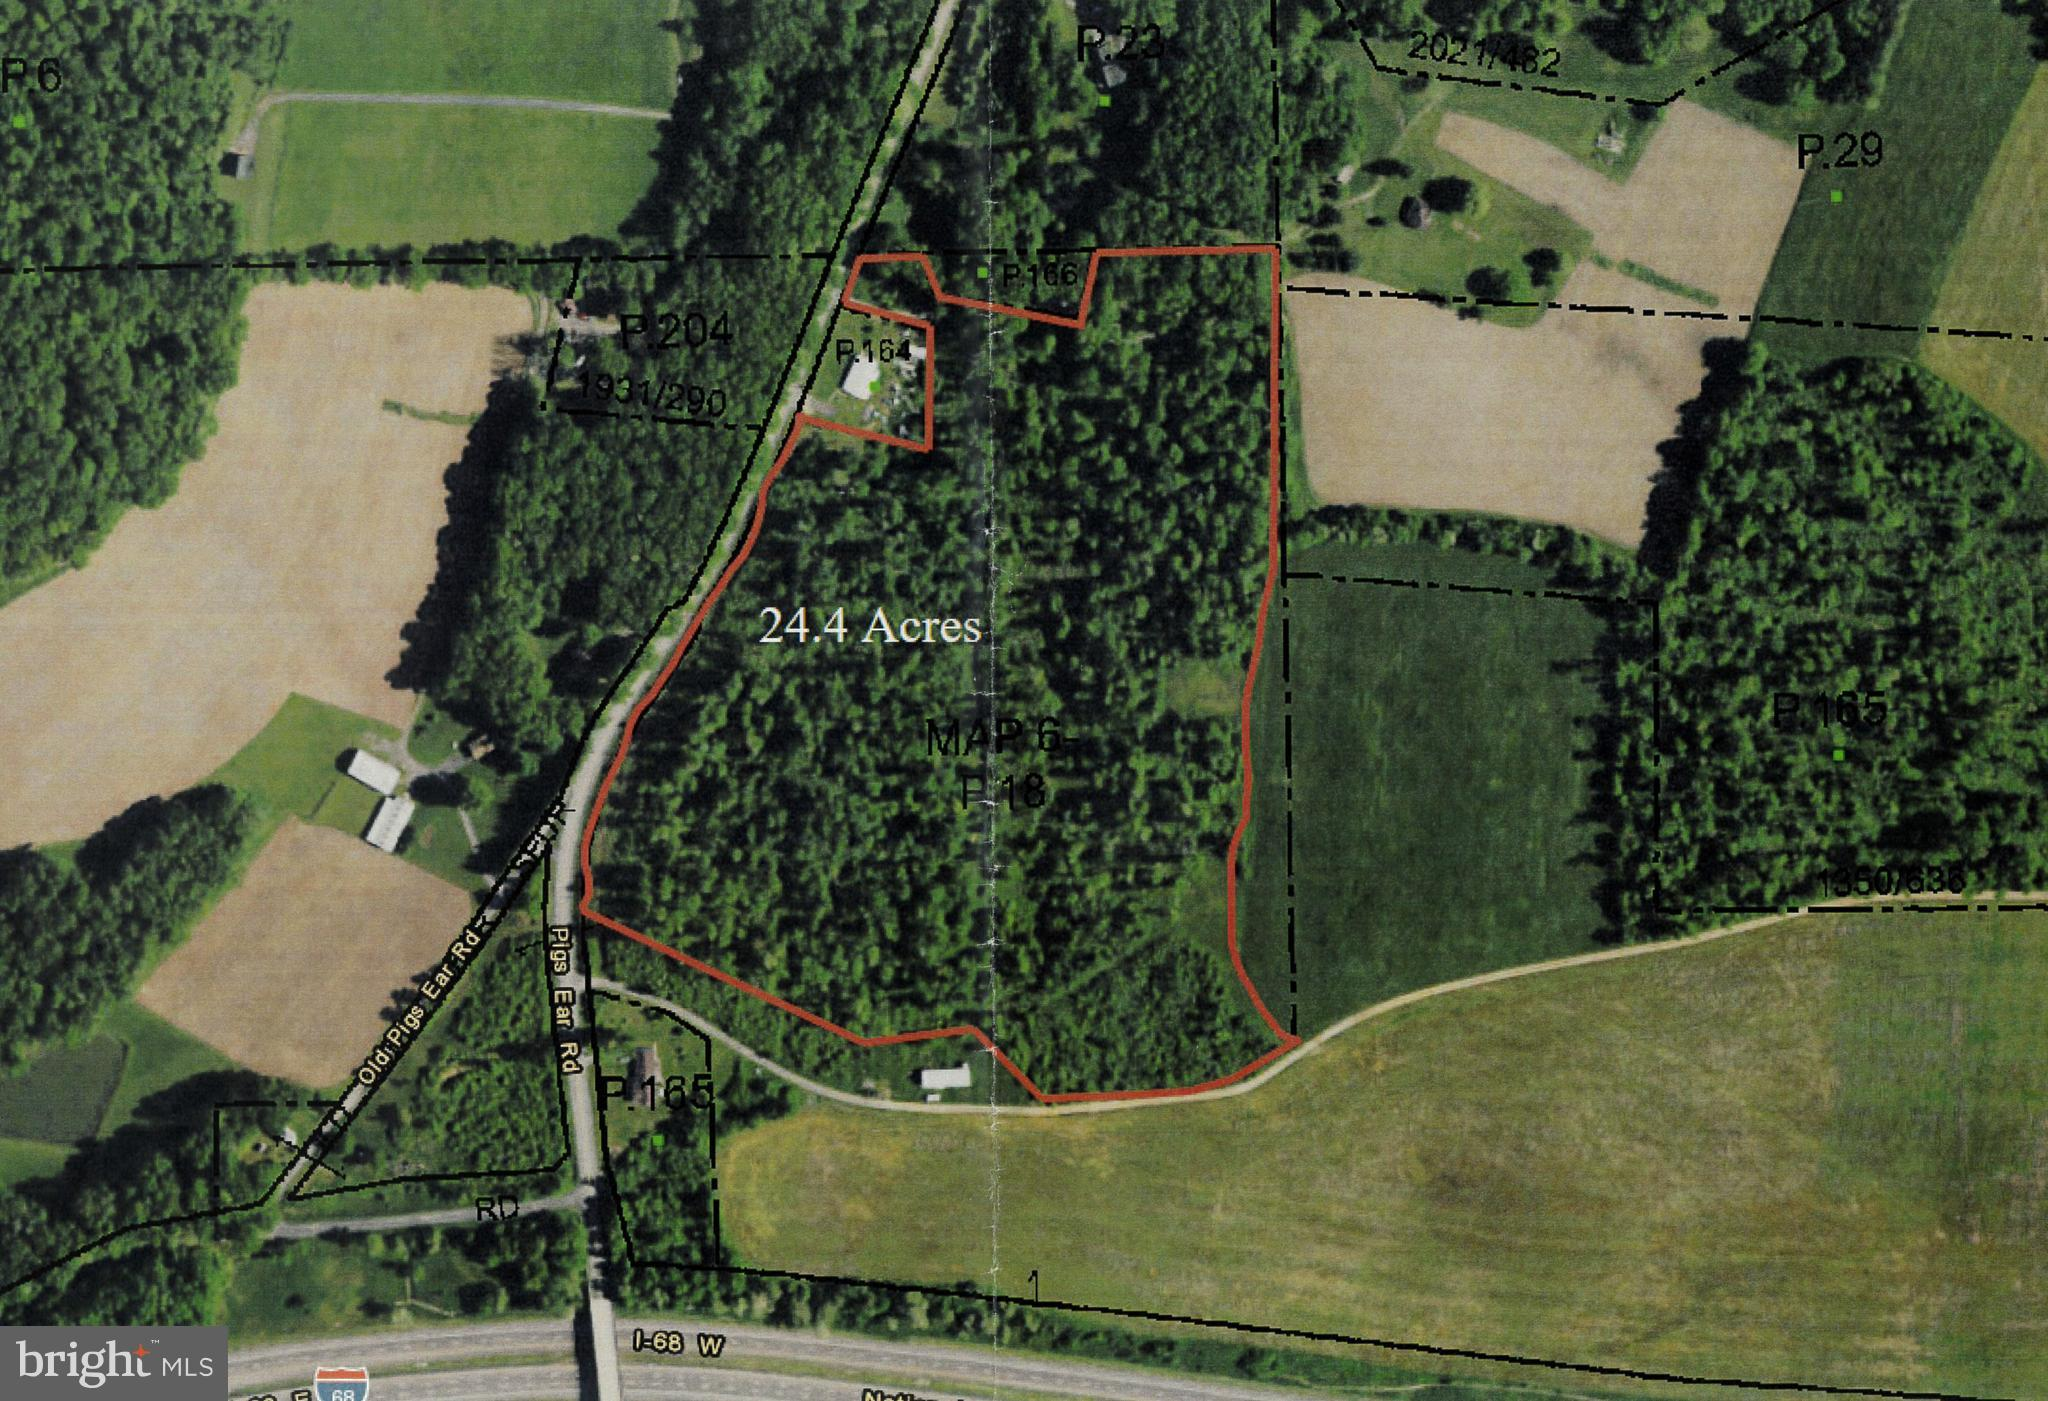 Northern Garrett County Lot & Land for Sale | Railey Realty